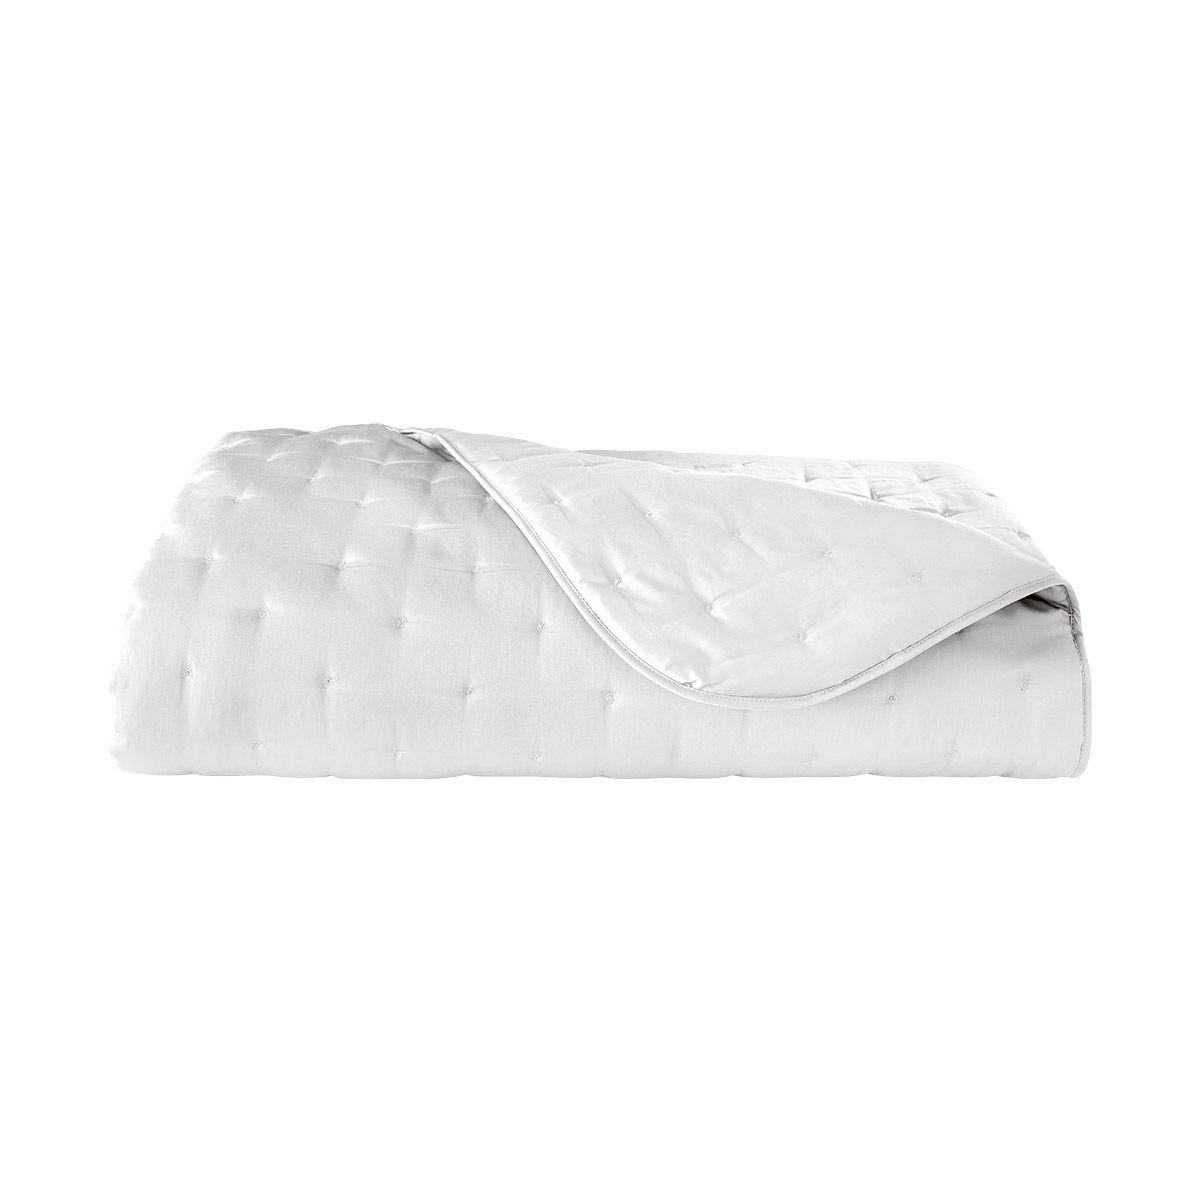 Yves Delorme Triomphe blanc king bed cover